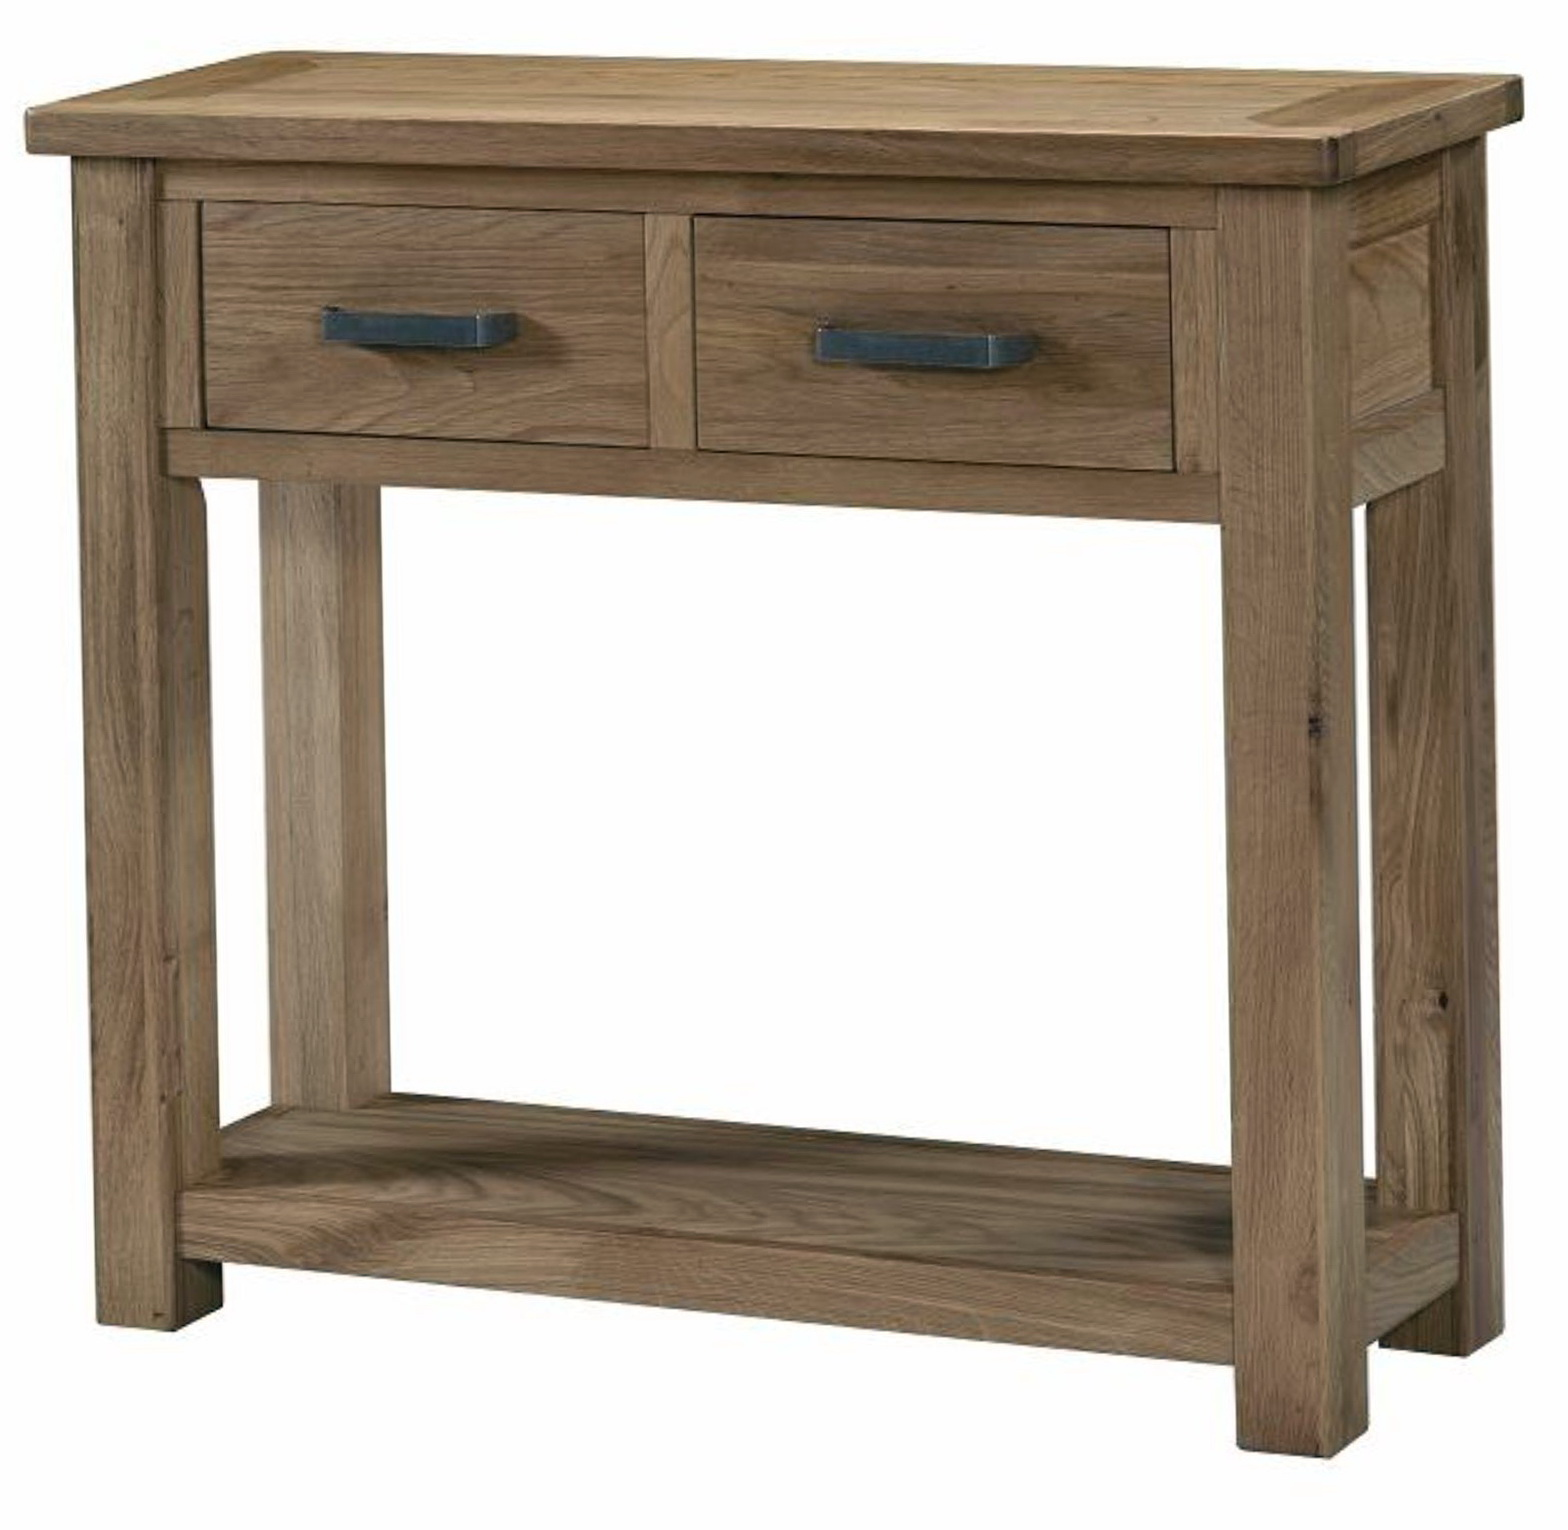 Rustic Console Table With Drawers